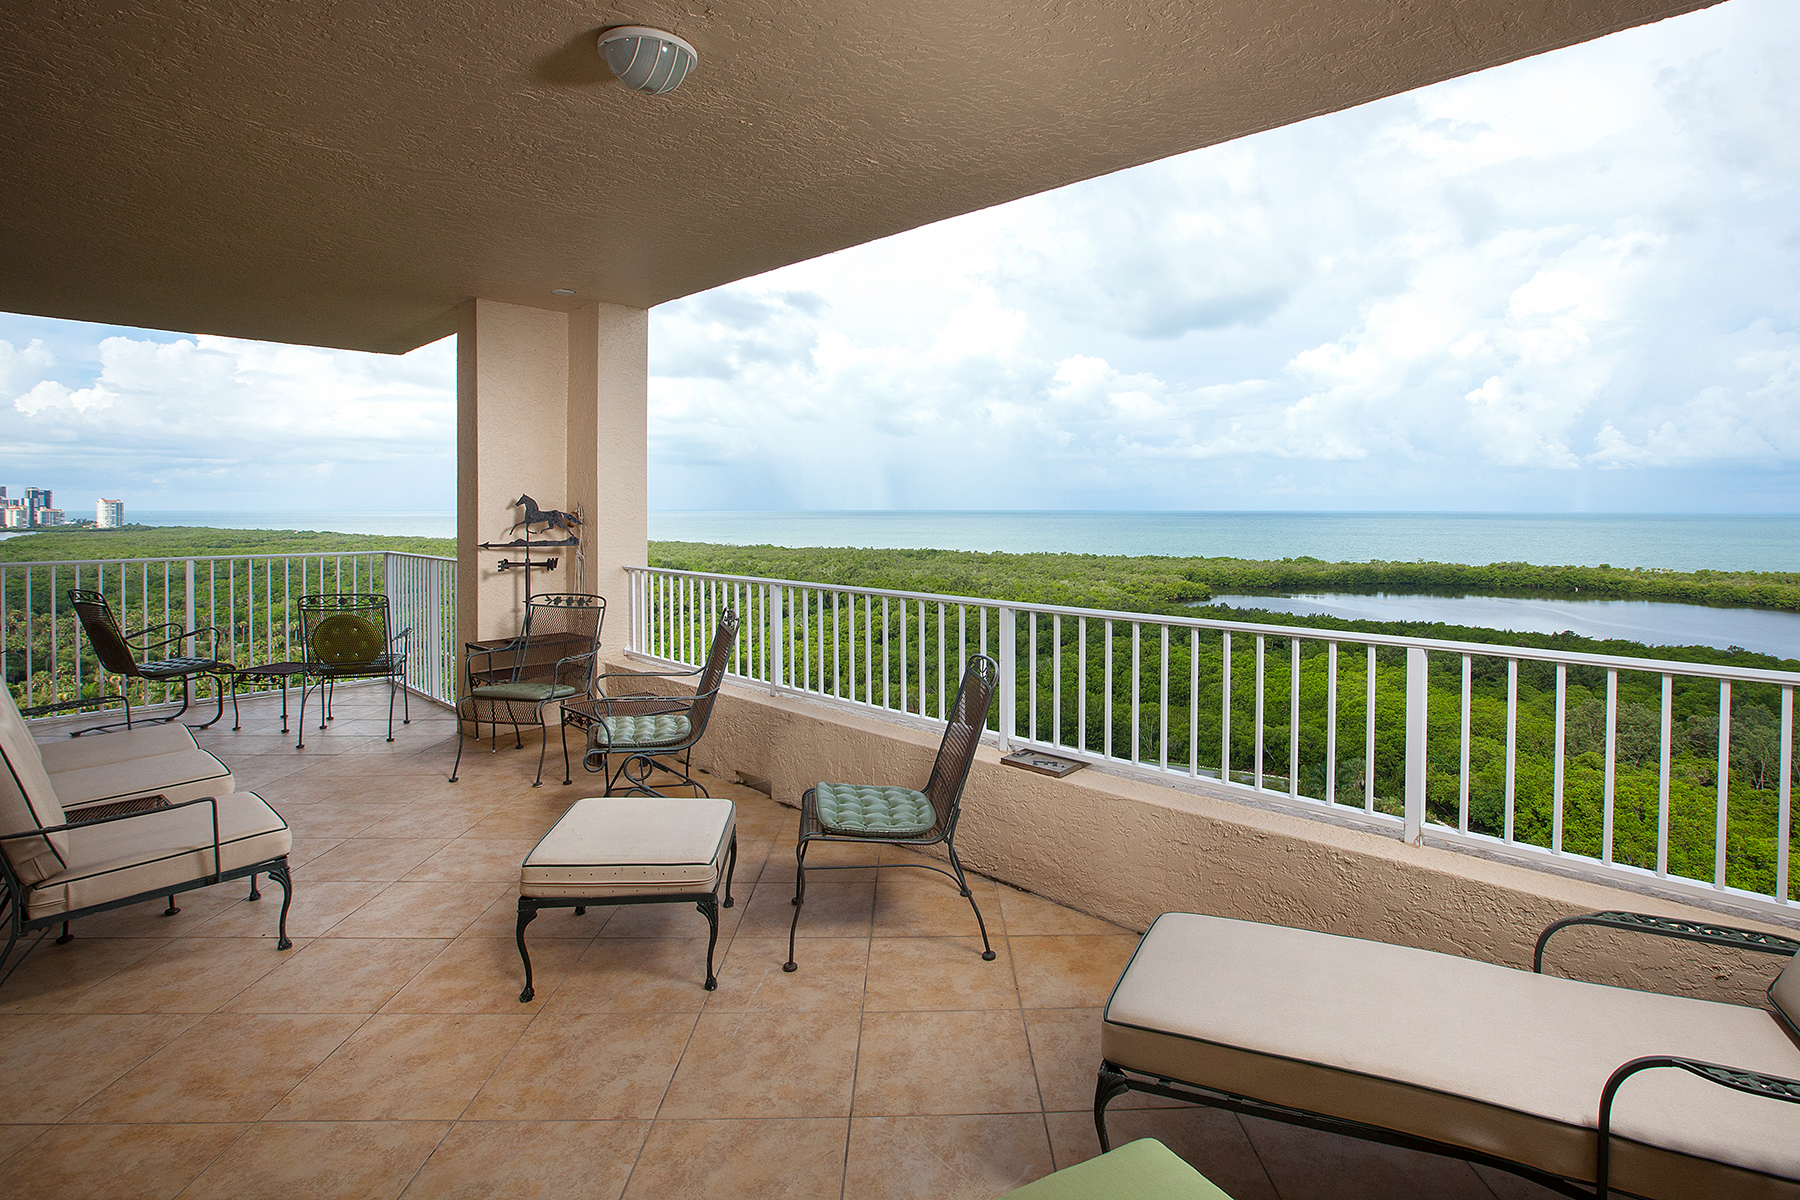 Condominium for Sale at PELICAN BAY - CAP FERRAT 6597 Nicholas Blvd 1603 Naples, Florida 34108 United States